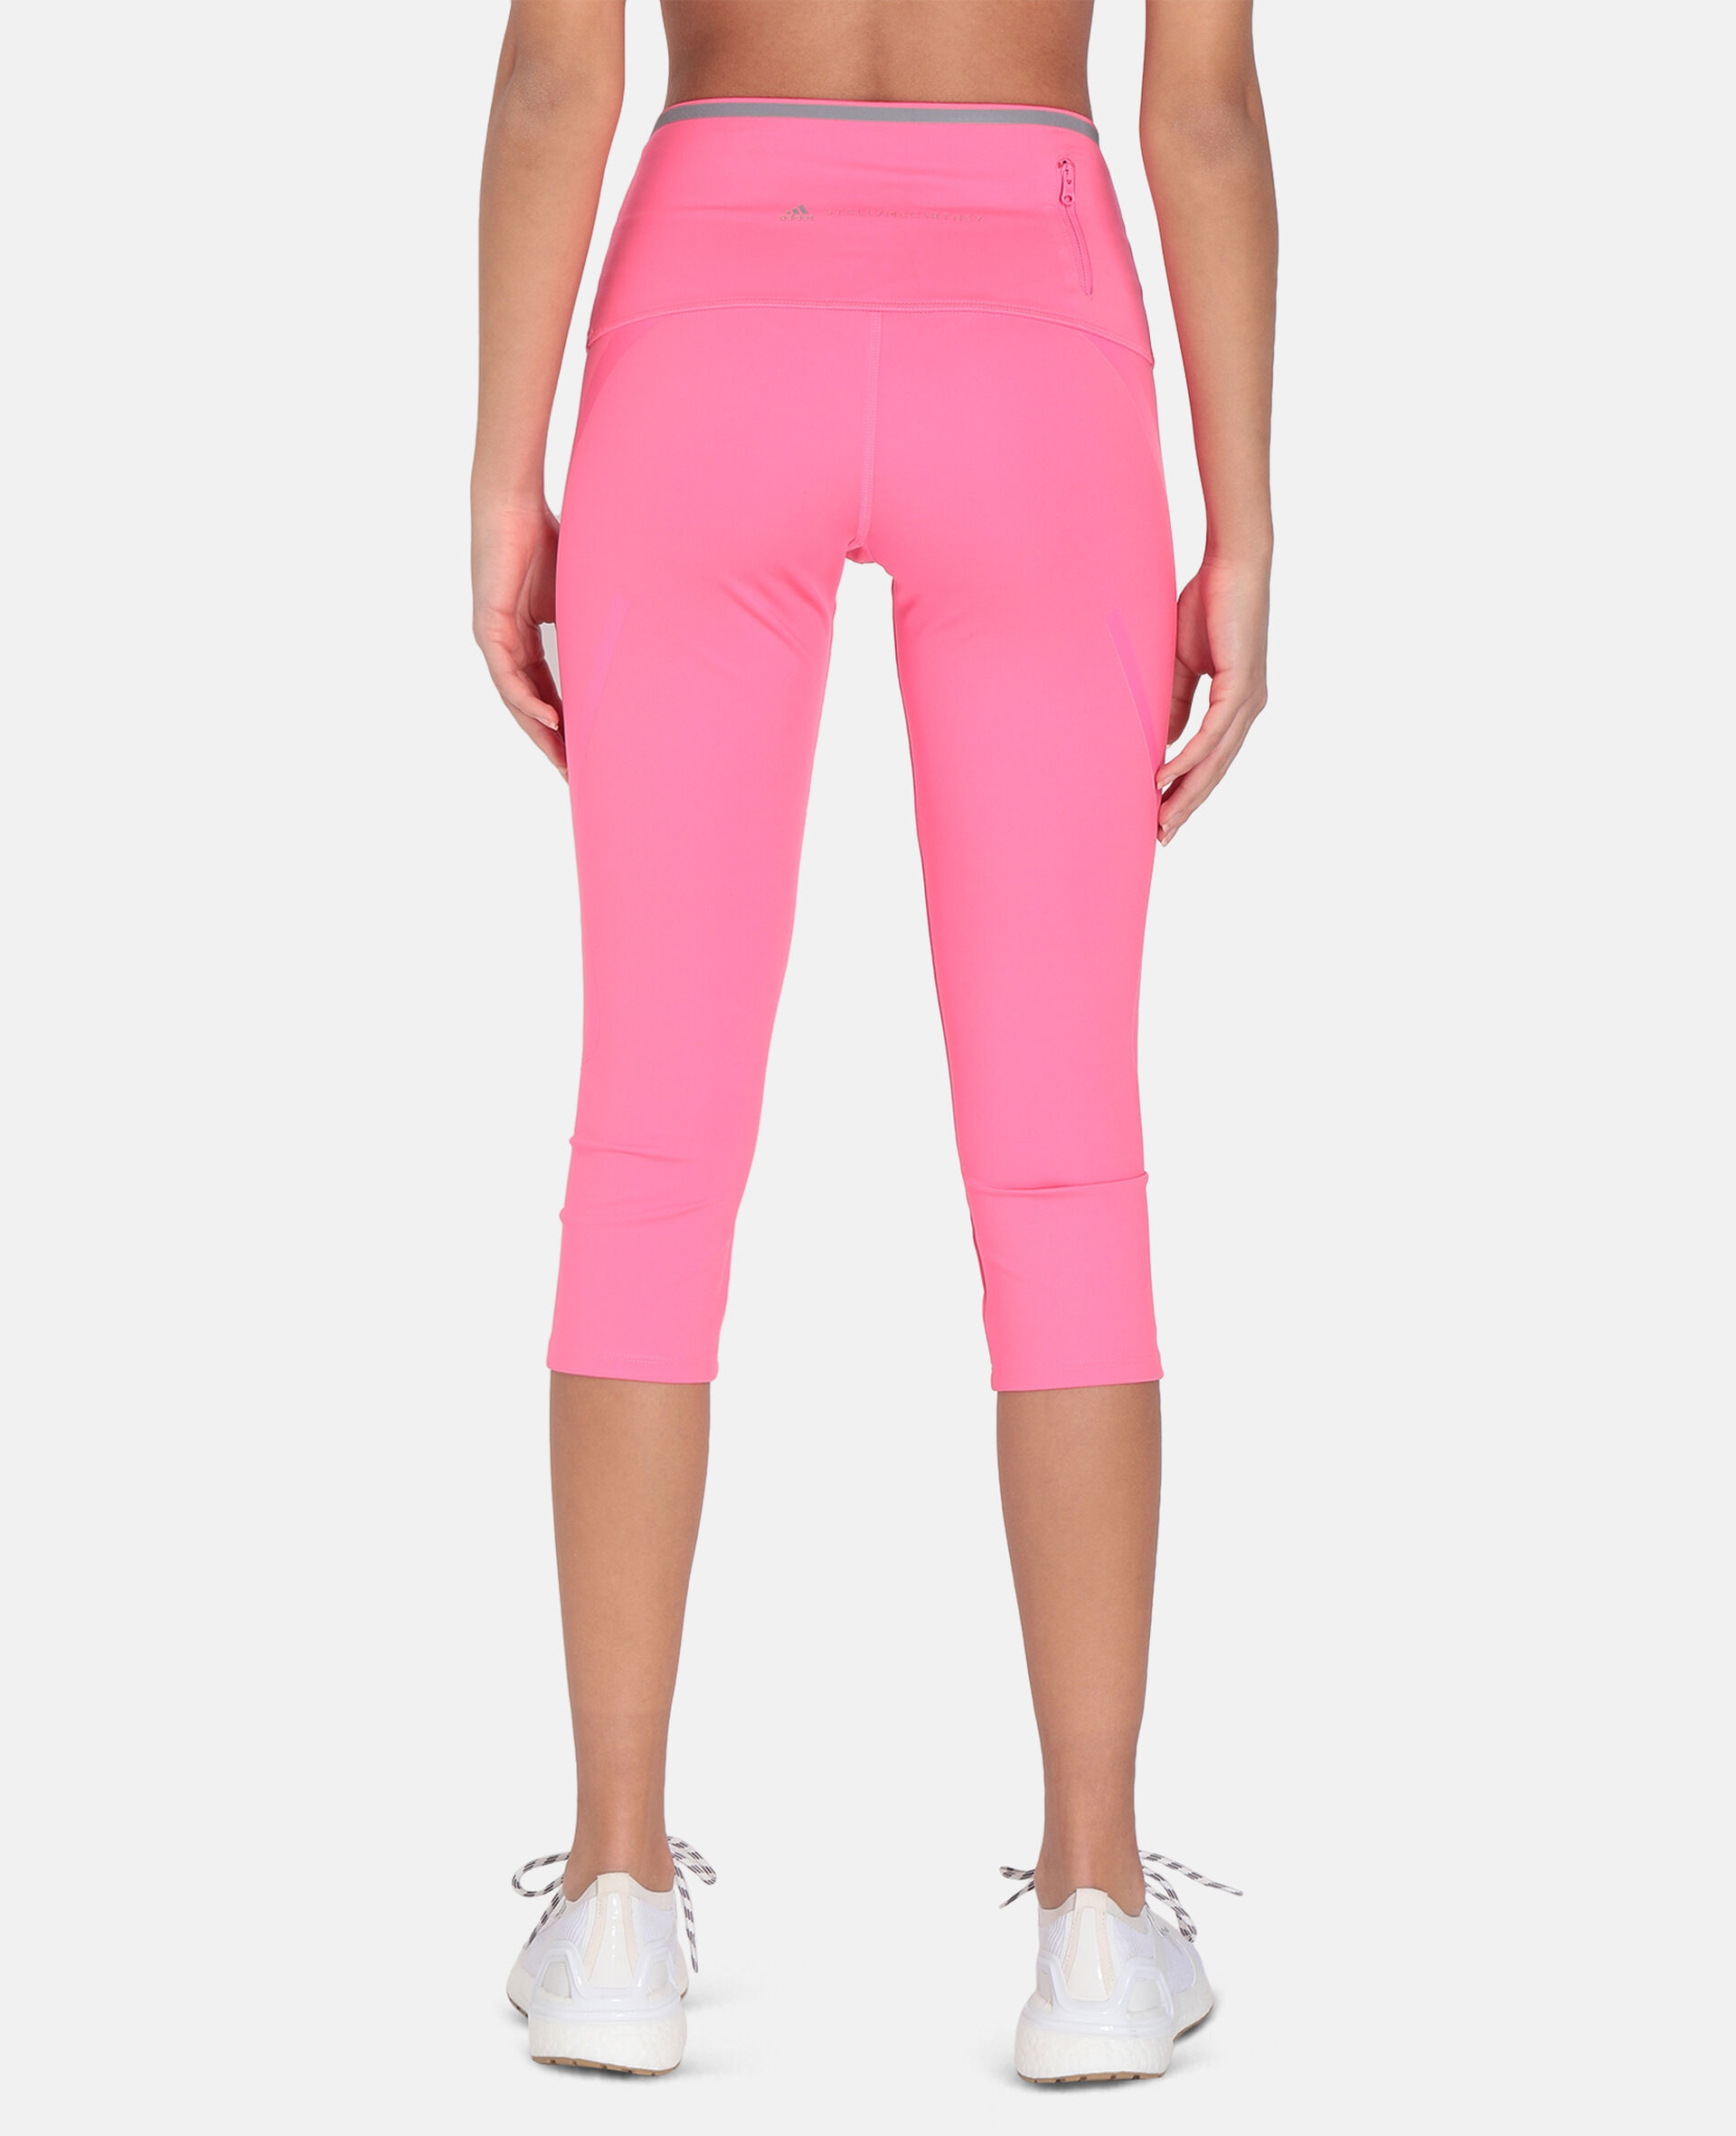 TruePace 3/4 Running Tights-Pink-large image number 2